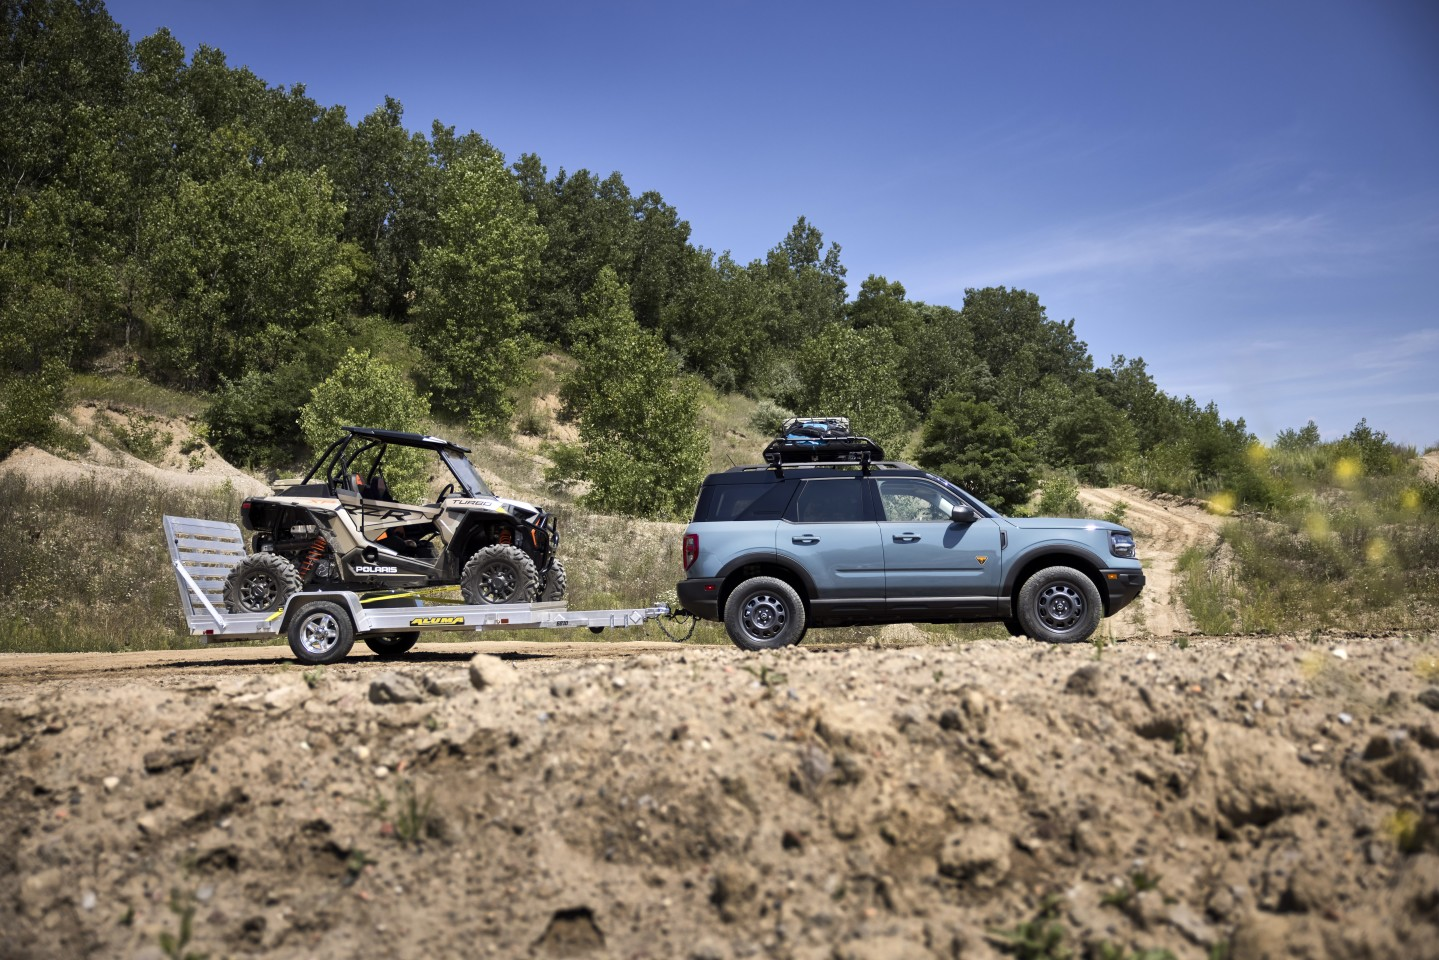 Two icons of off-roading: Ford Bronco (Sport) and Polaris RZR (XP Turbo 1000)